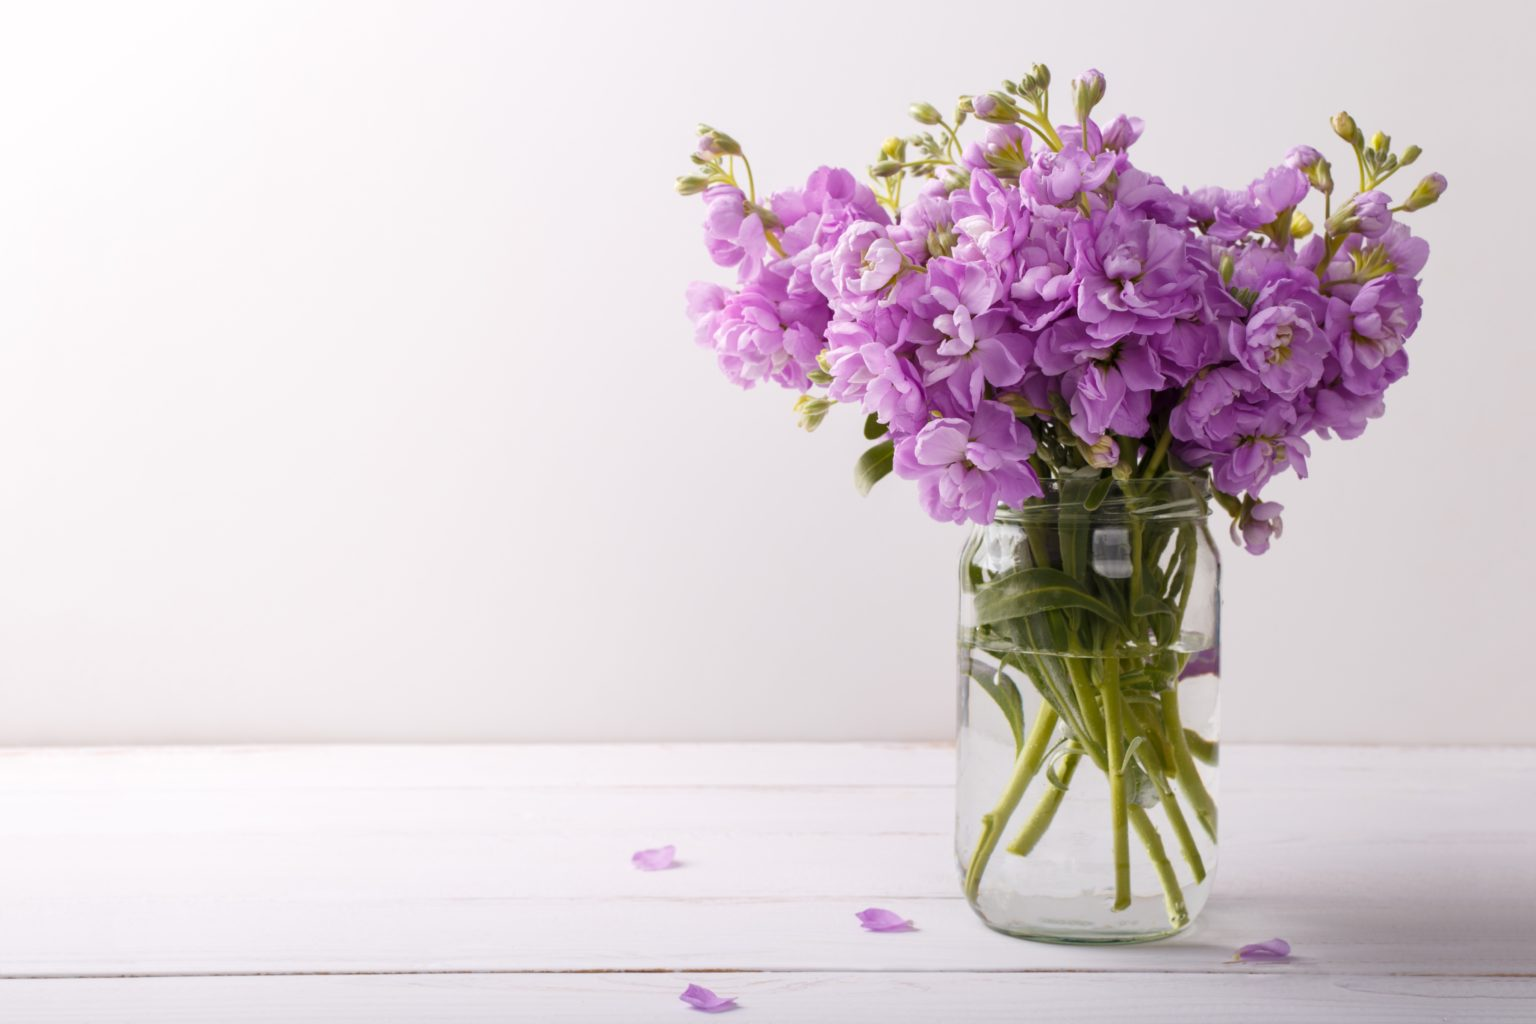 Bouquet of lilac matthiola flowers in vase on white wooden background